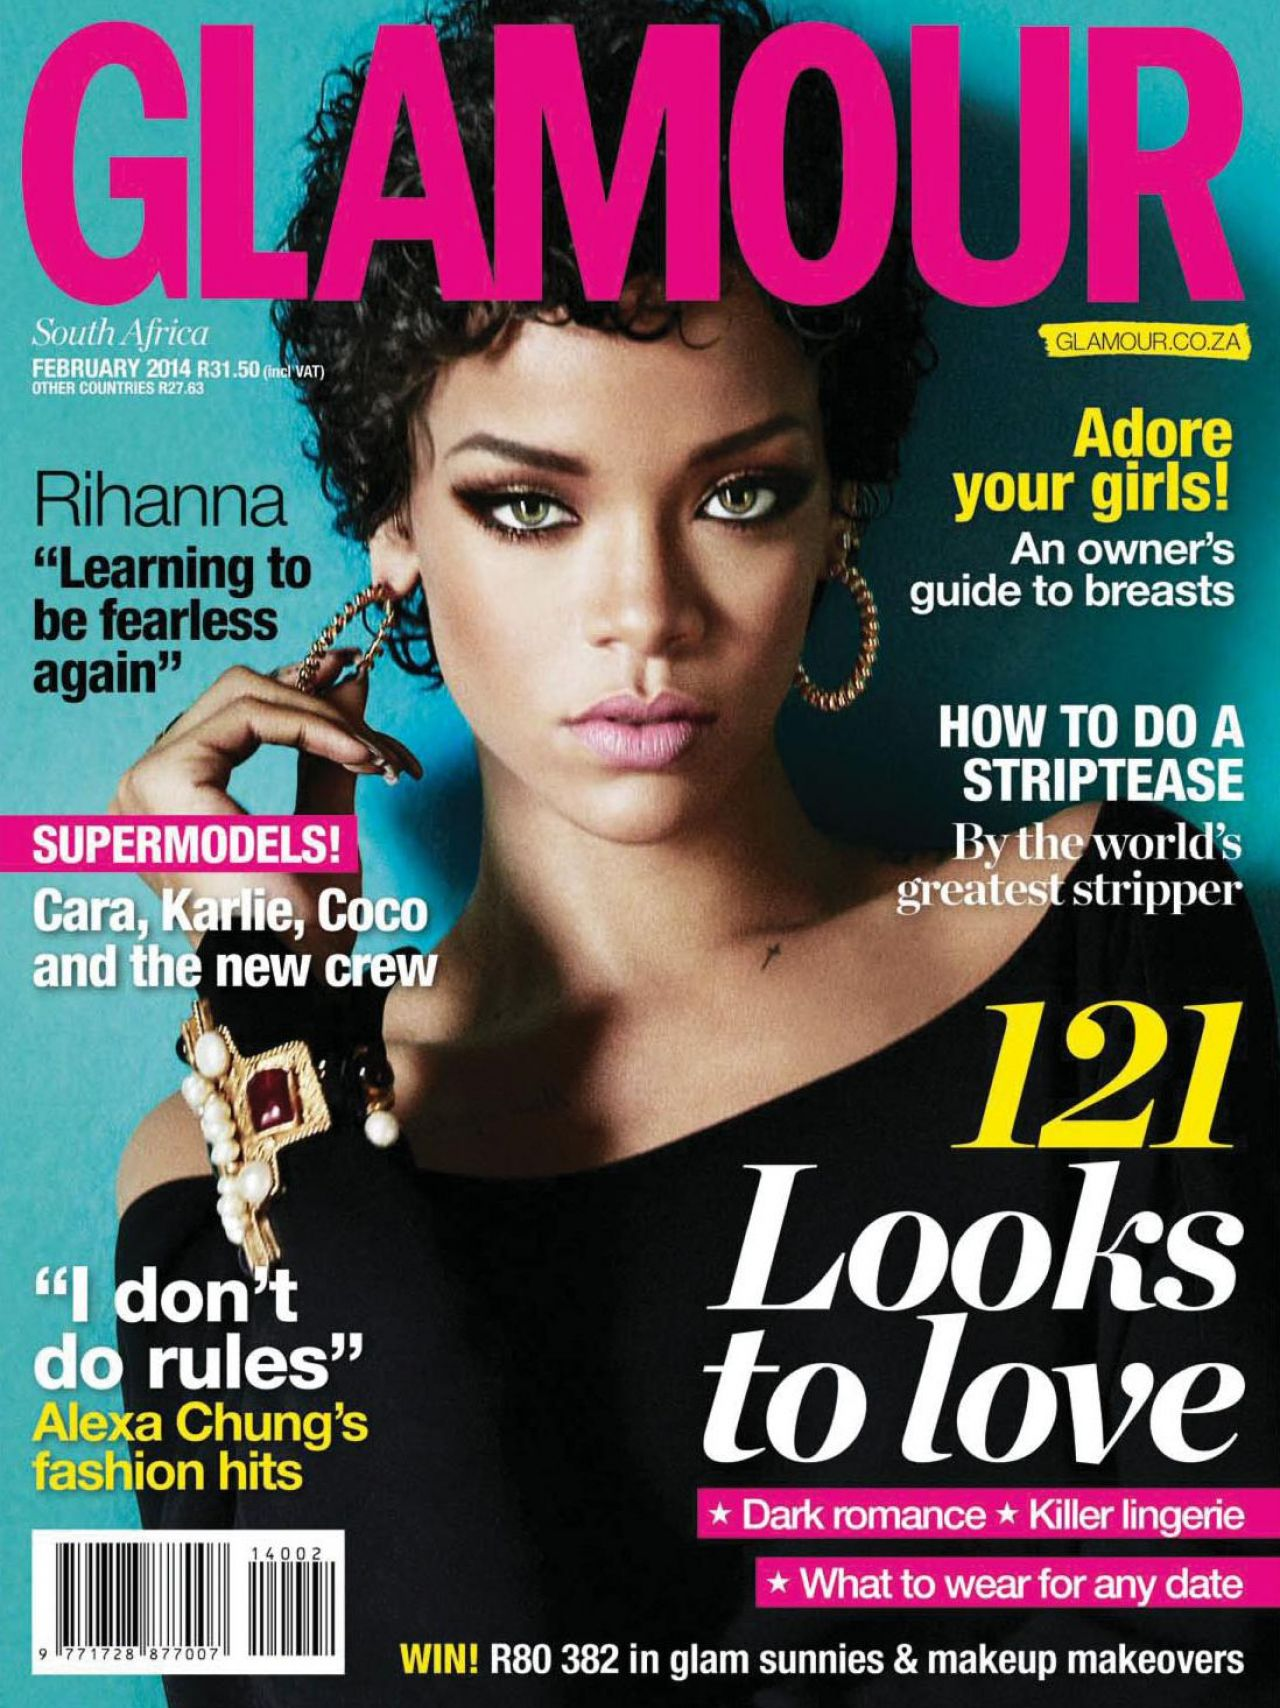 GLAMOUR Magazine (South Africa)